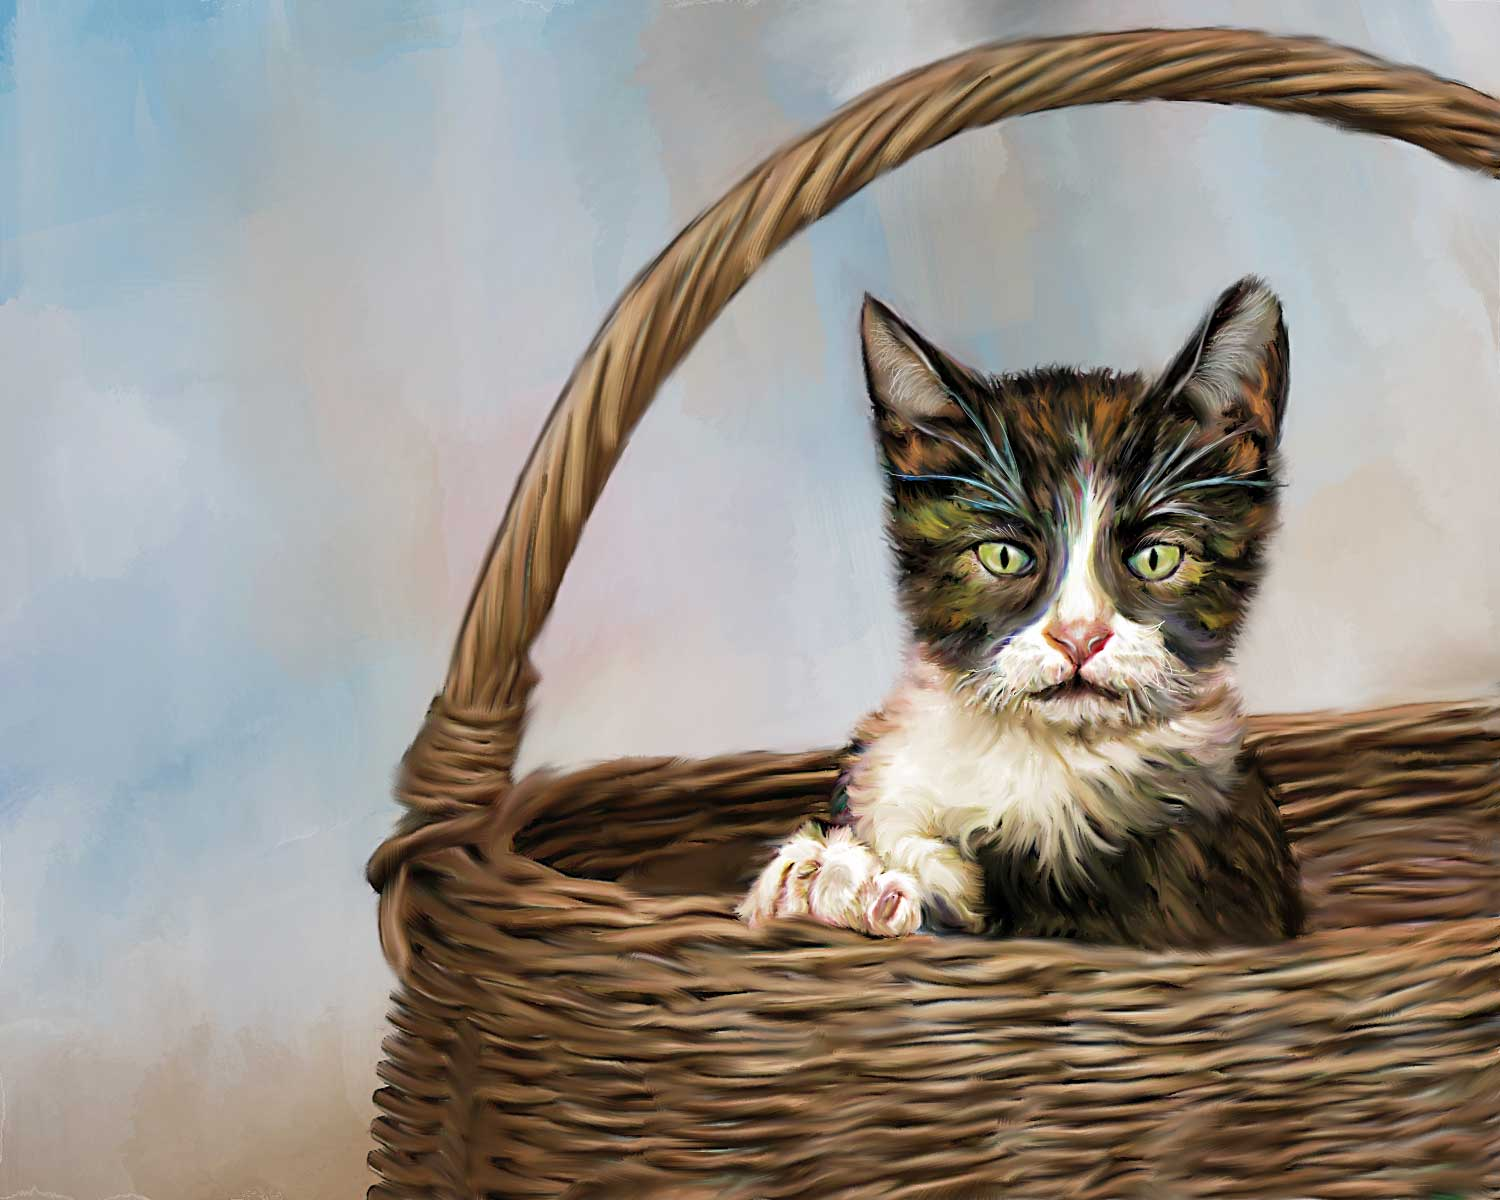 portait cat in basket